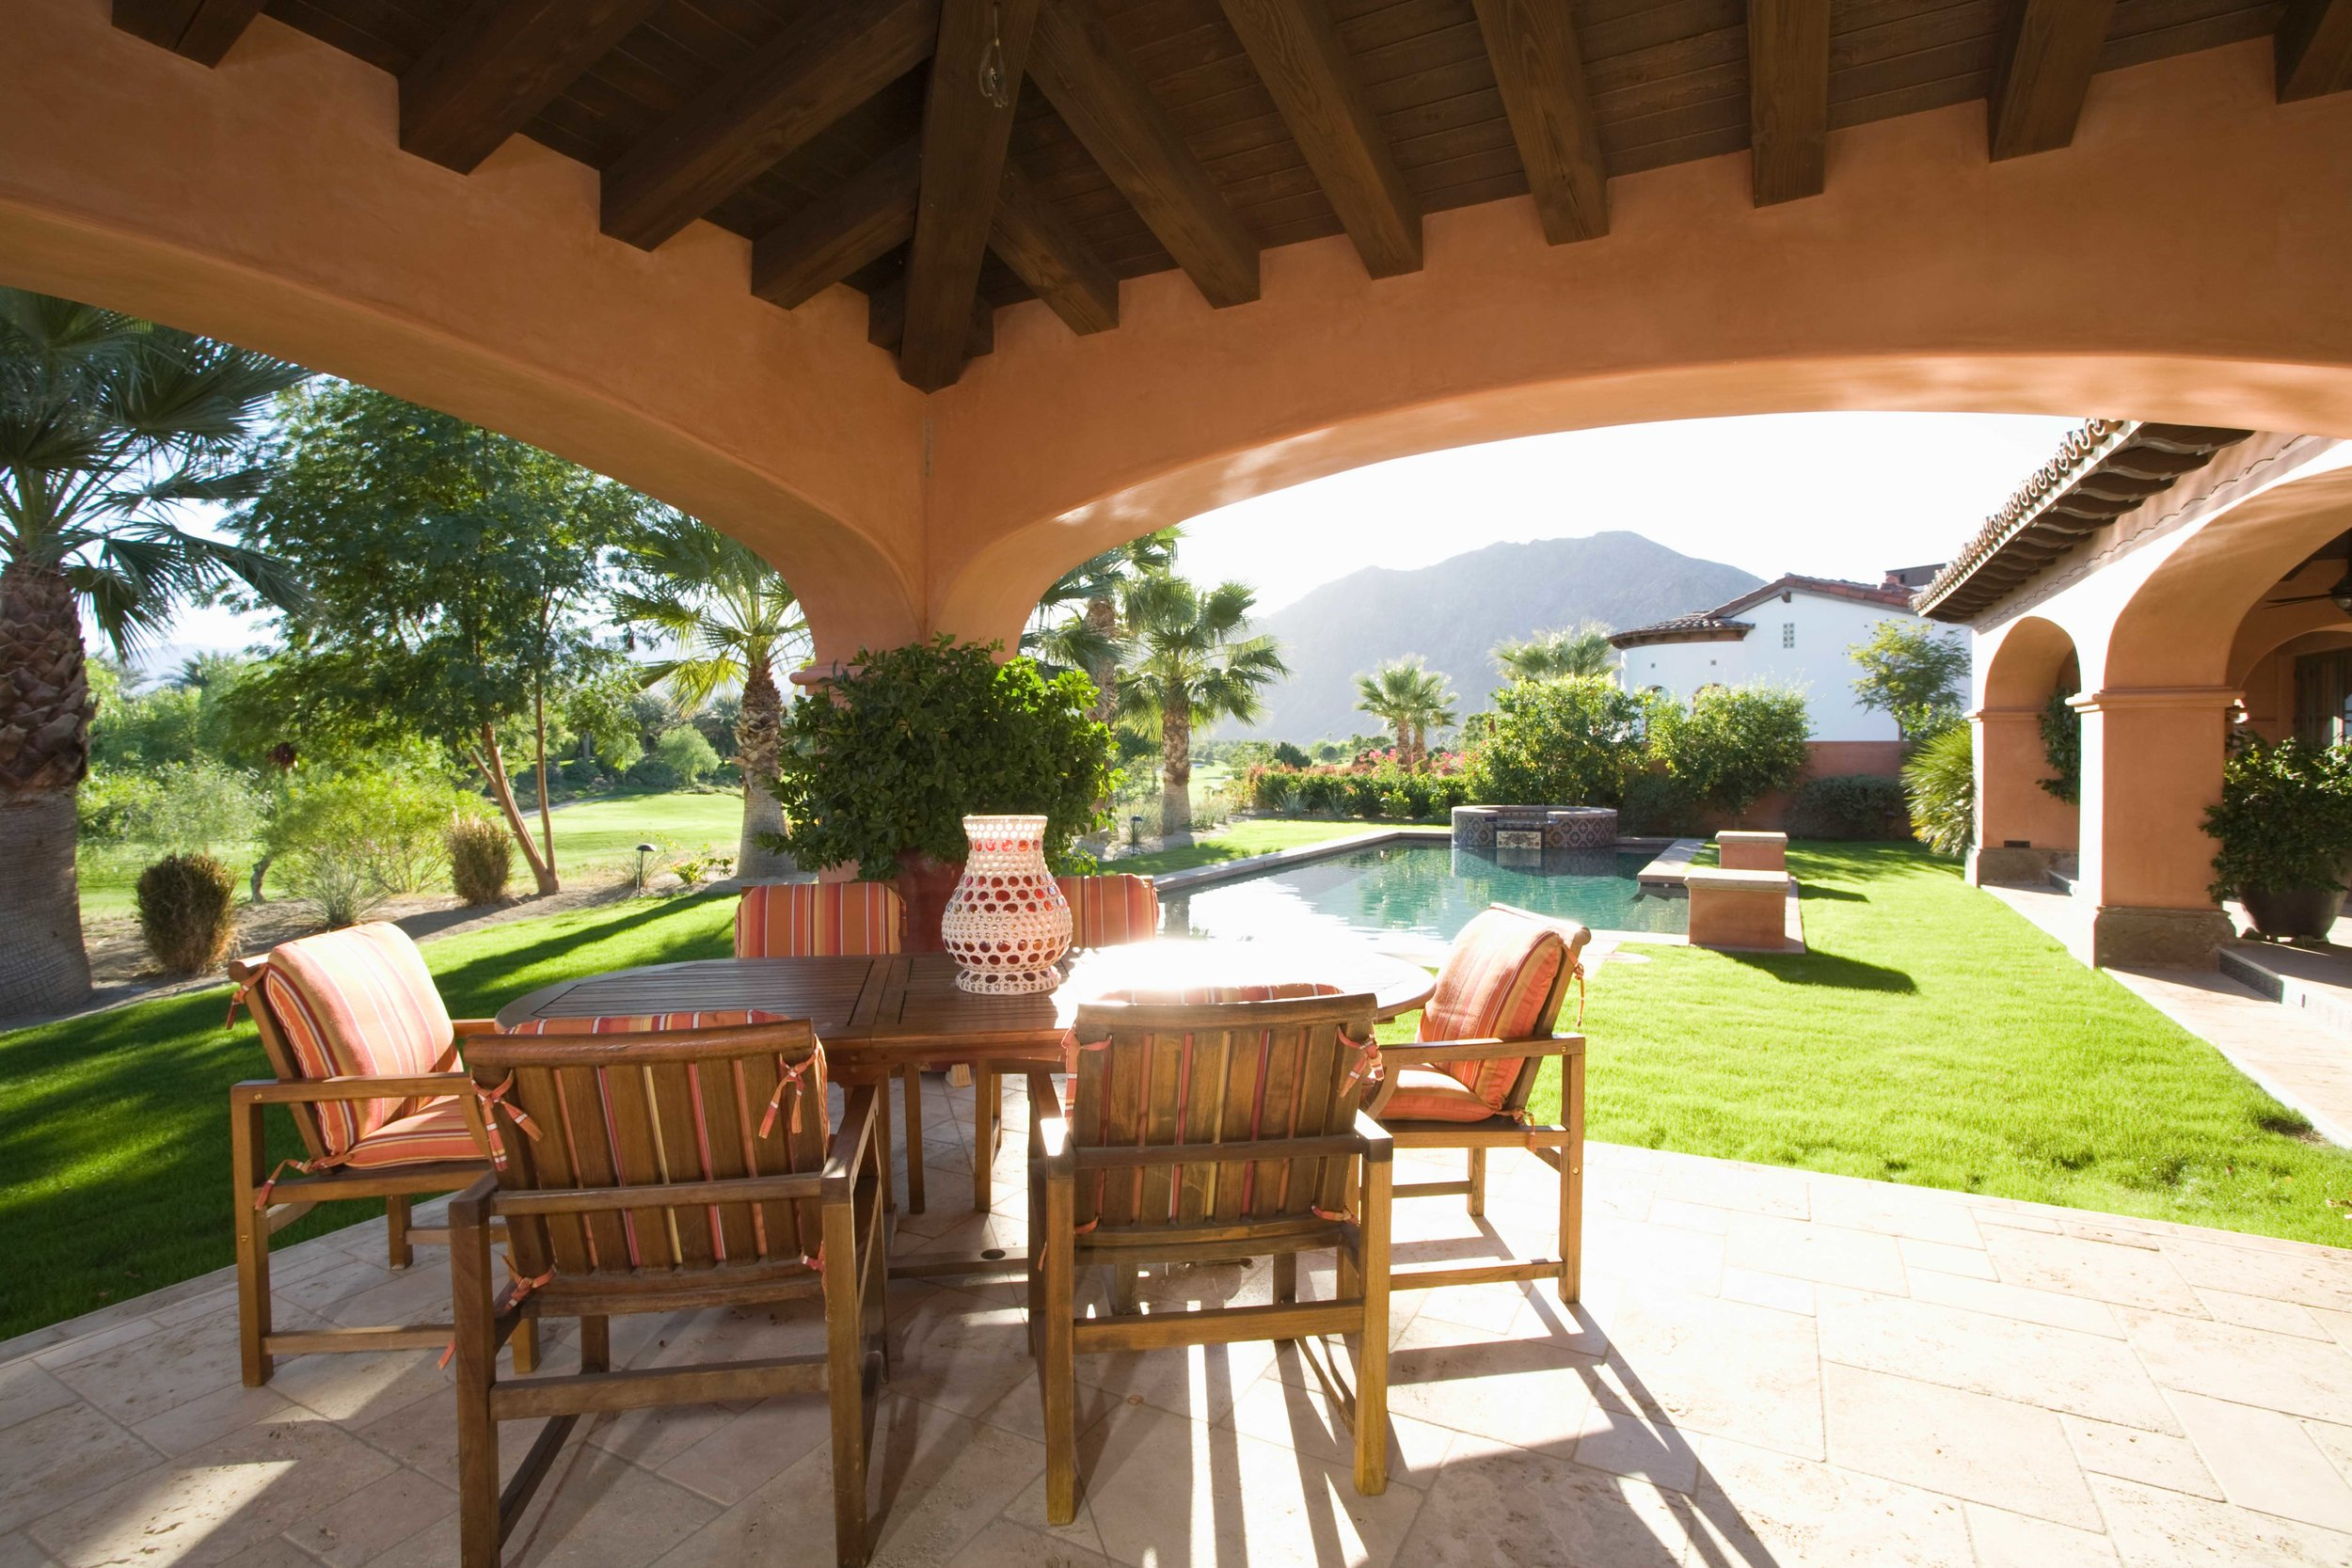 graphicstock-sitting-area-with-sunlit-lawn-against-mountain_BZ-xIpU2Xe-.jpg